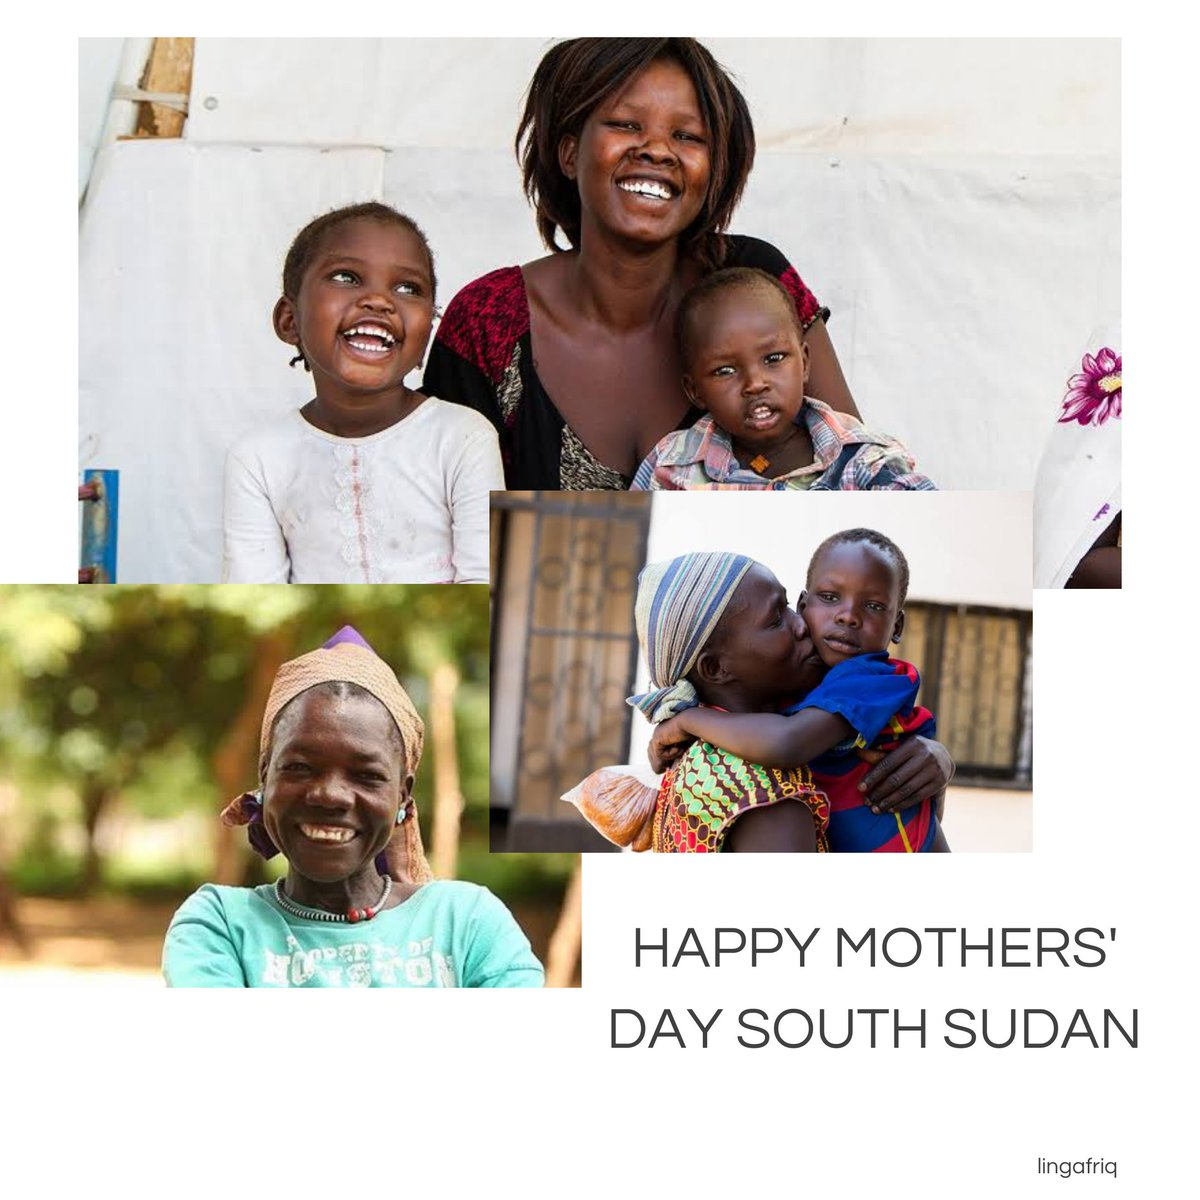 Celebrating Mothers, for laughing with us on the best days and sticking with us on the worst day❤️. Happy Mothers' Day South Sudan!🇸🇸 • • • #happymothersday #happymothersday❤️ #southsudan #southsudanese #lingafriq #africanow #africa #afriq #southsudanmothersday https://t.co/FkZBelSqIC